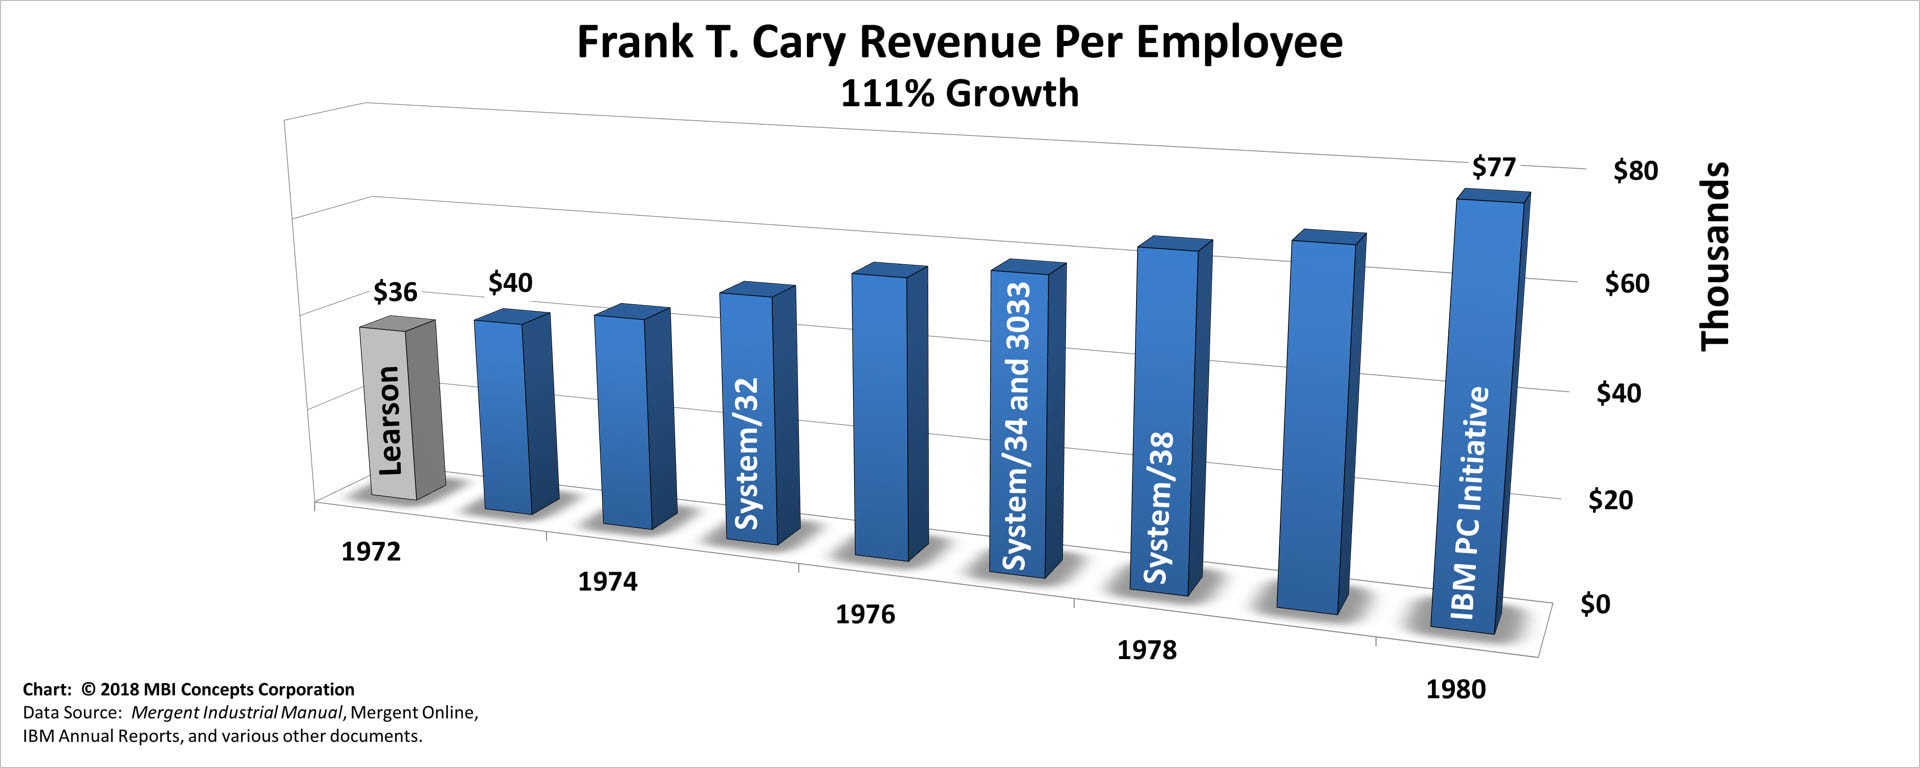 Bar chart of Frank T. Cary's Yearly Revenue per Employee over his 8 years as IBM's CEO from 1973 to 1980.